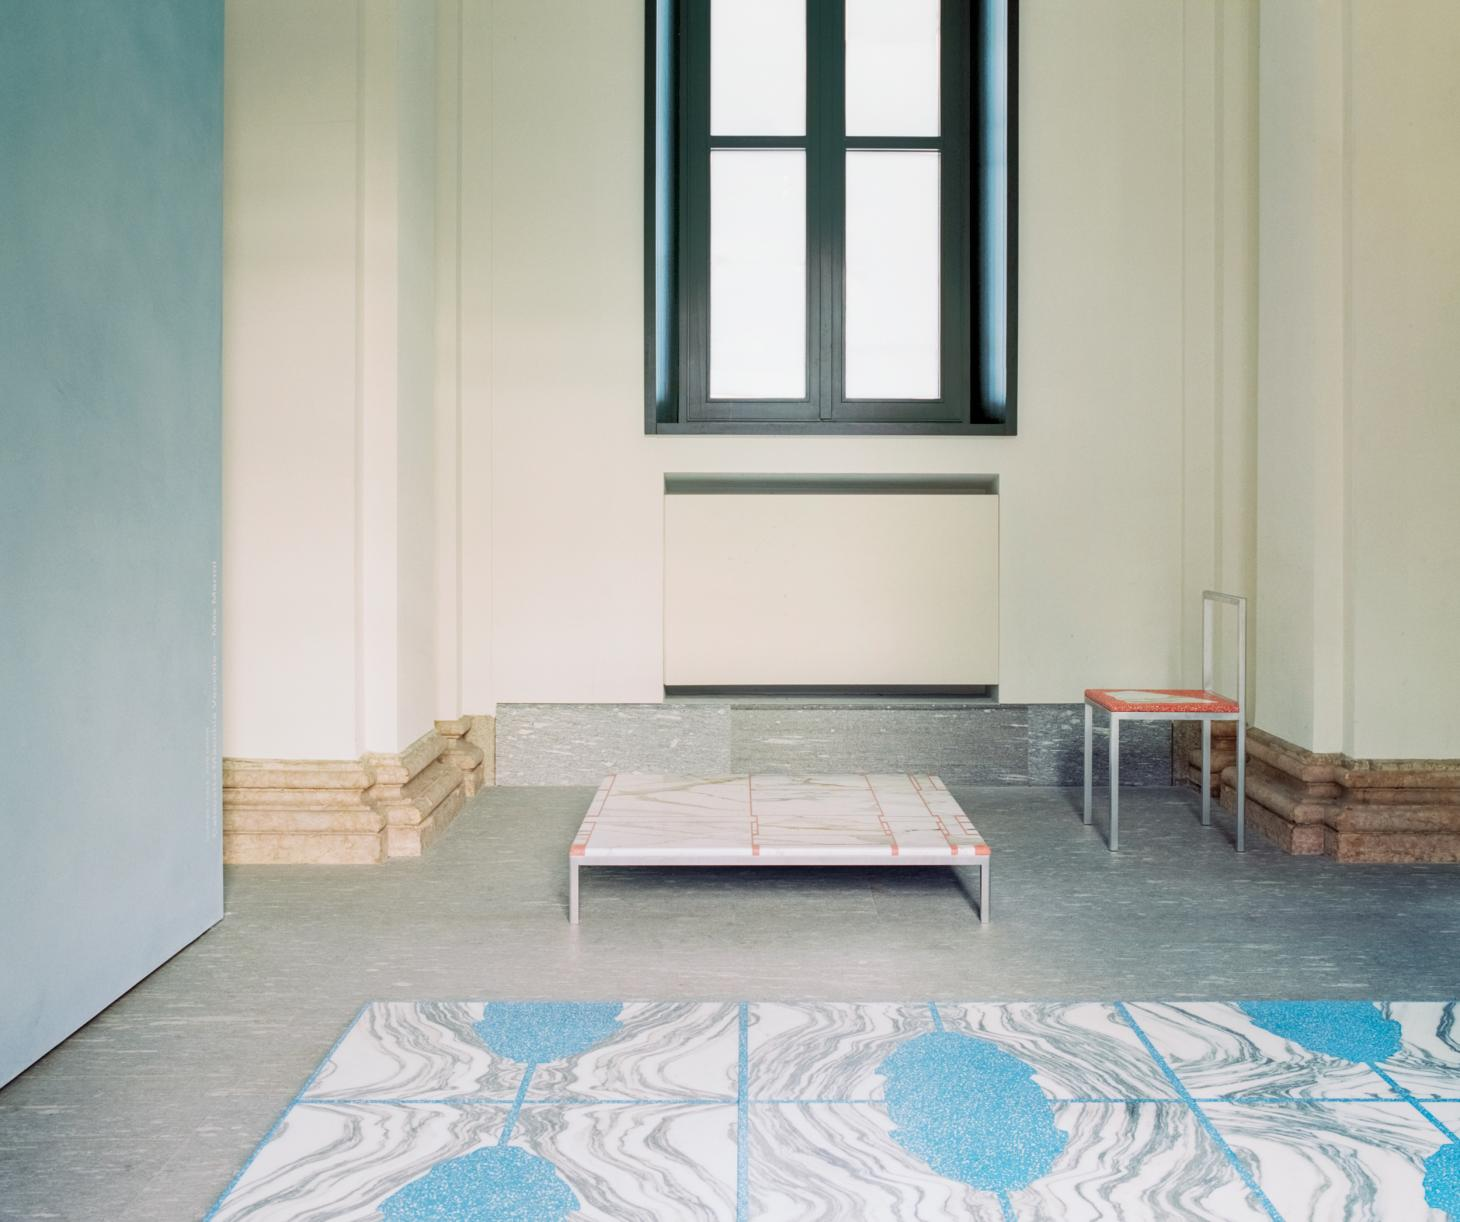 Installation view of Stefan Scholten's The Stone House at Palazzo Turati, Milan